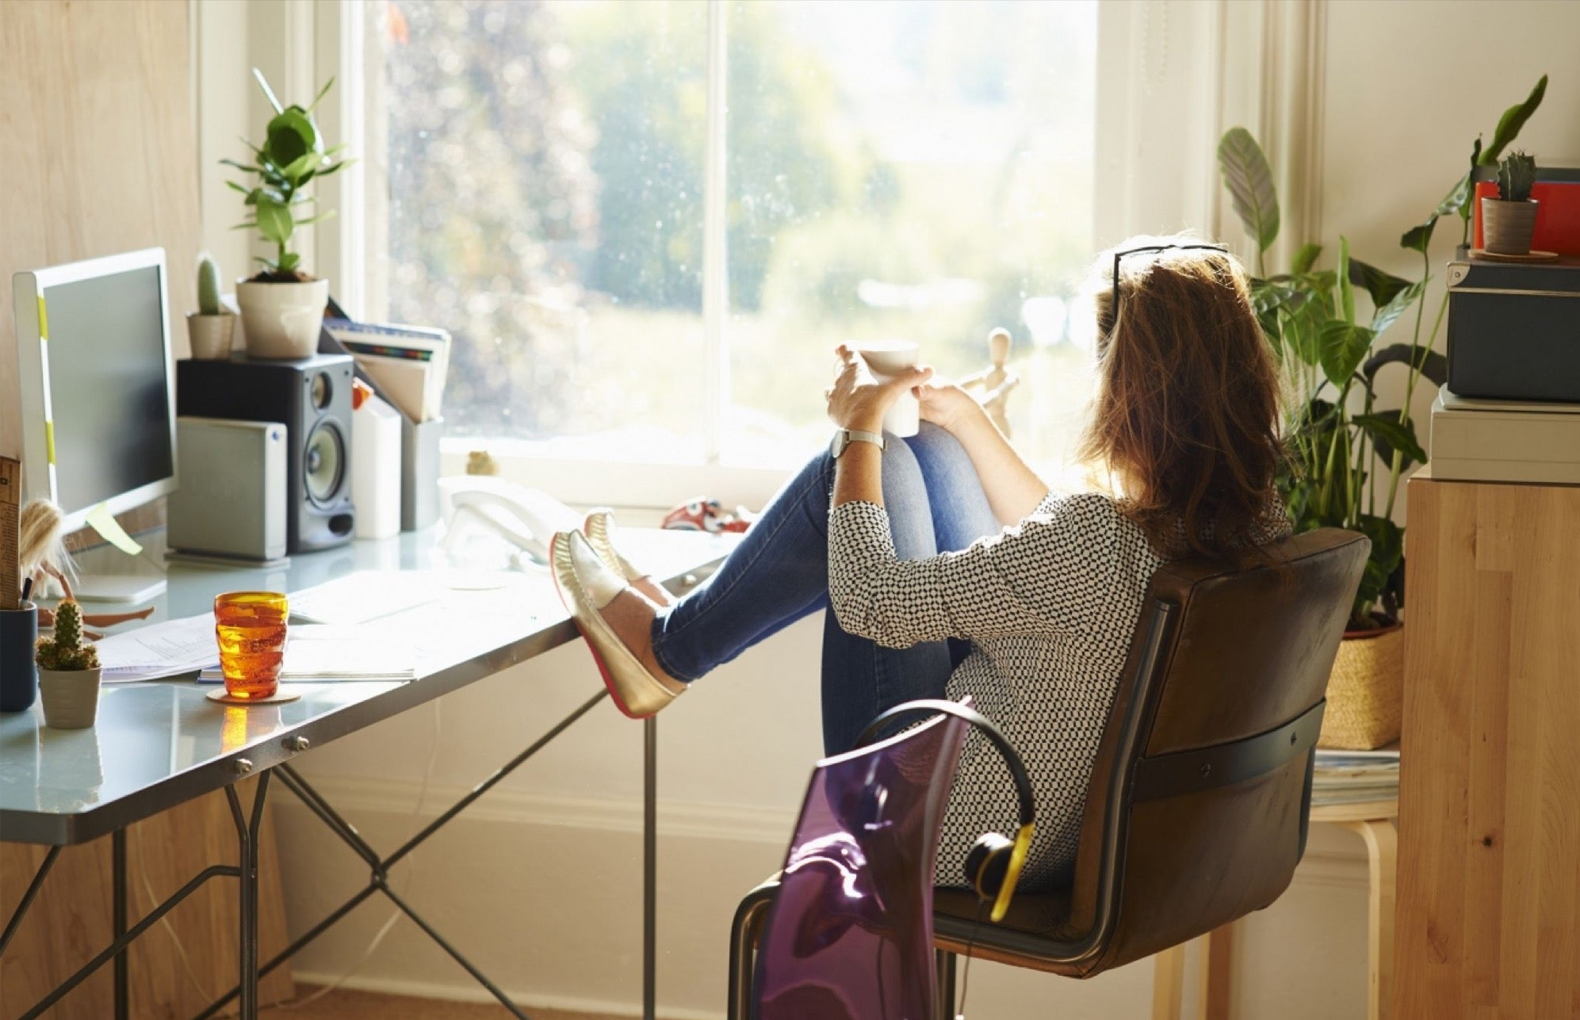 How to make sure you take enough breaks throughout the day when working at home